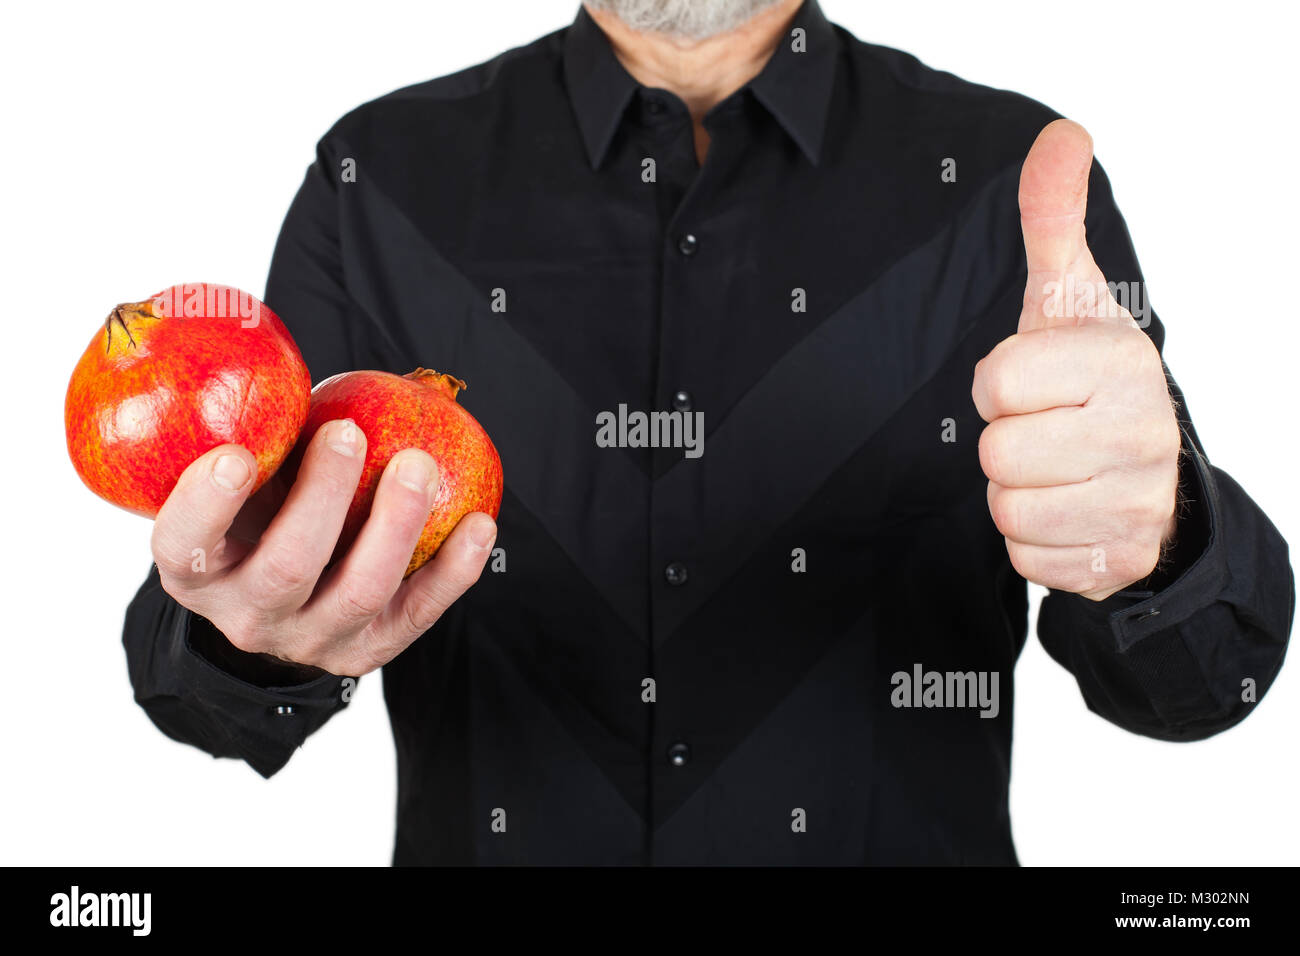 Close up picture of man in black holding ripe pomegranate, high antioxidant fruit, showing thumbs up - Stock Image